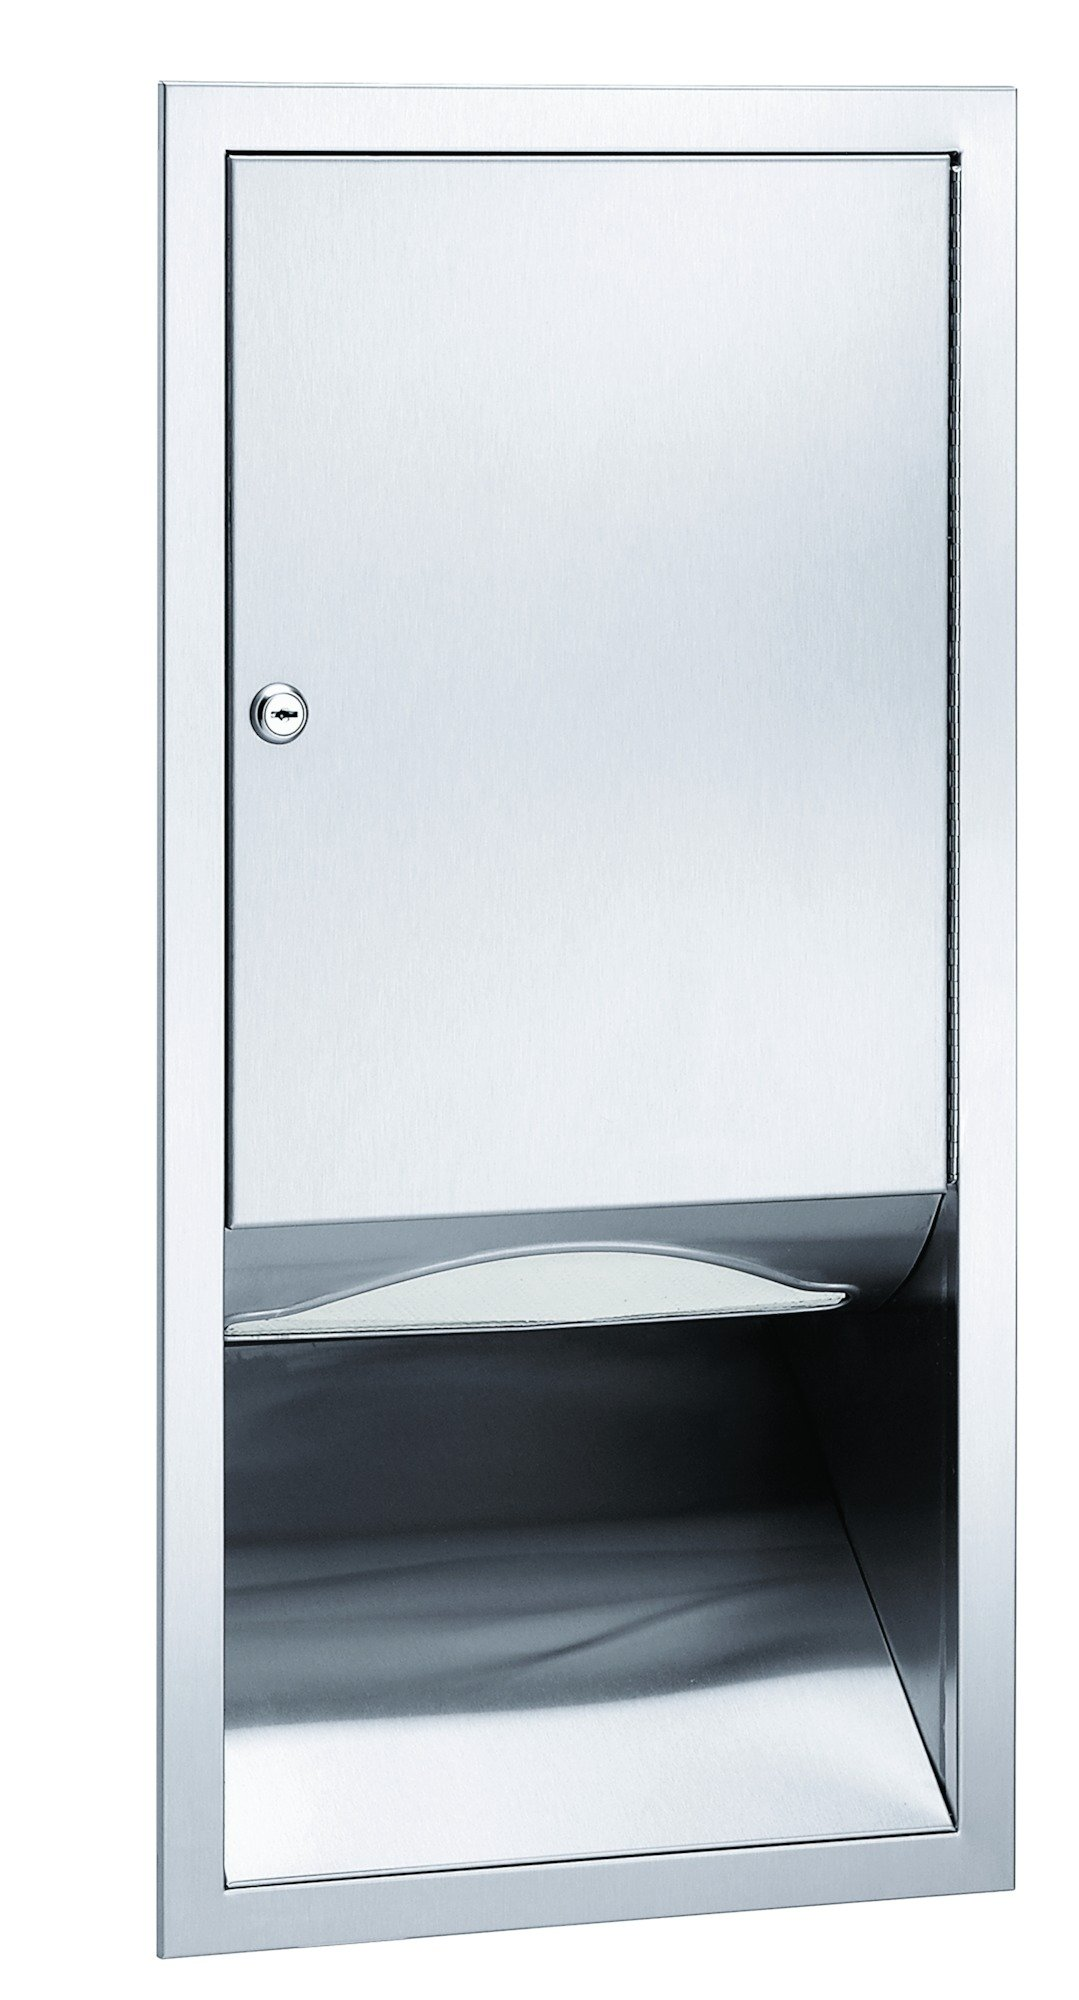 Bradley Recessed Paper Towel Dispenser 247 | Accurate Door & Hardware, Inc